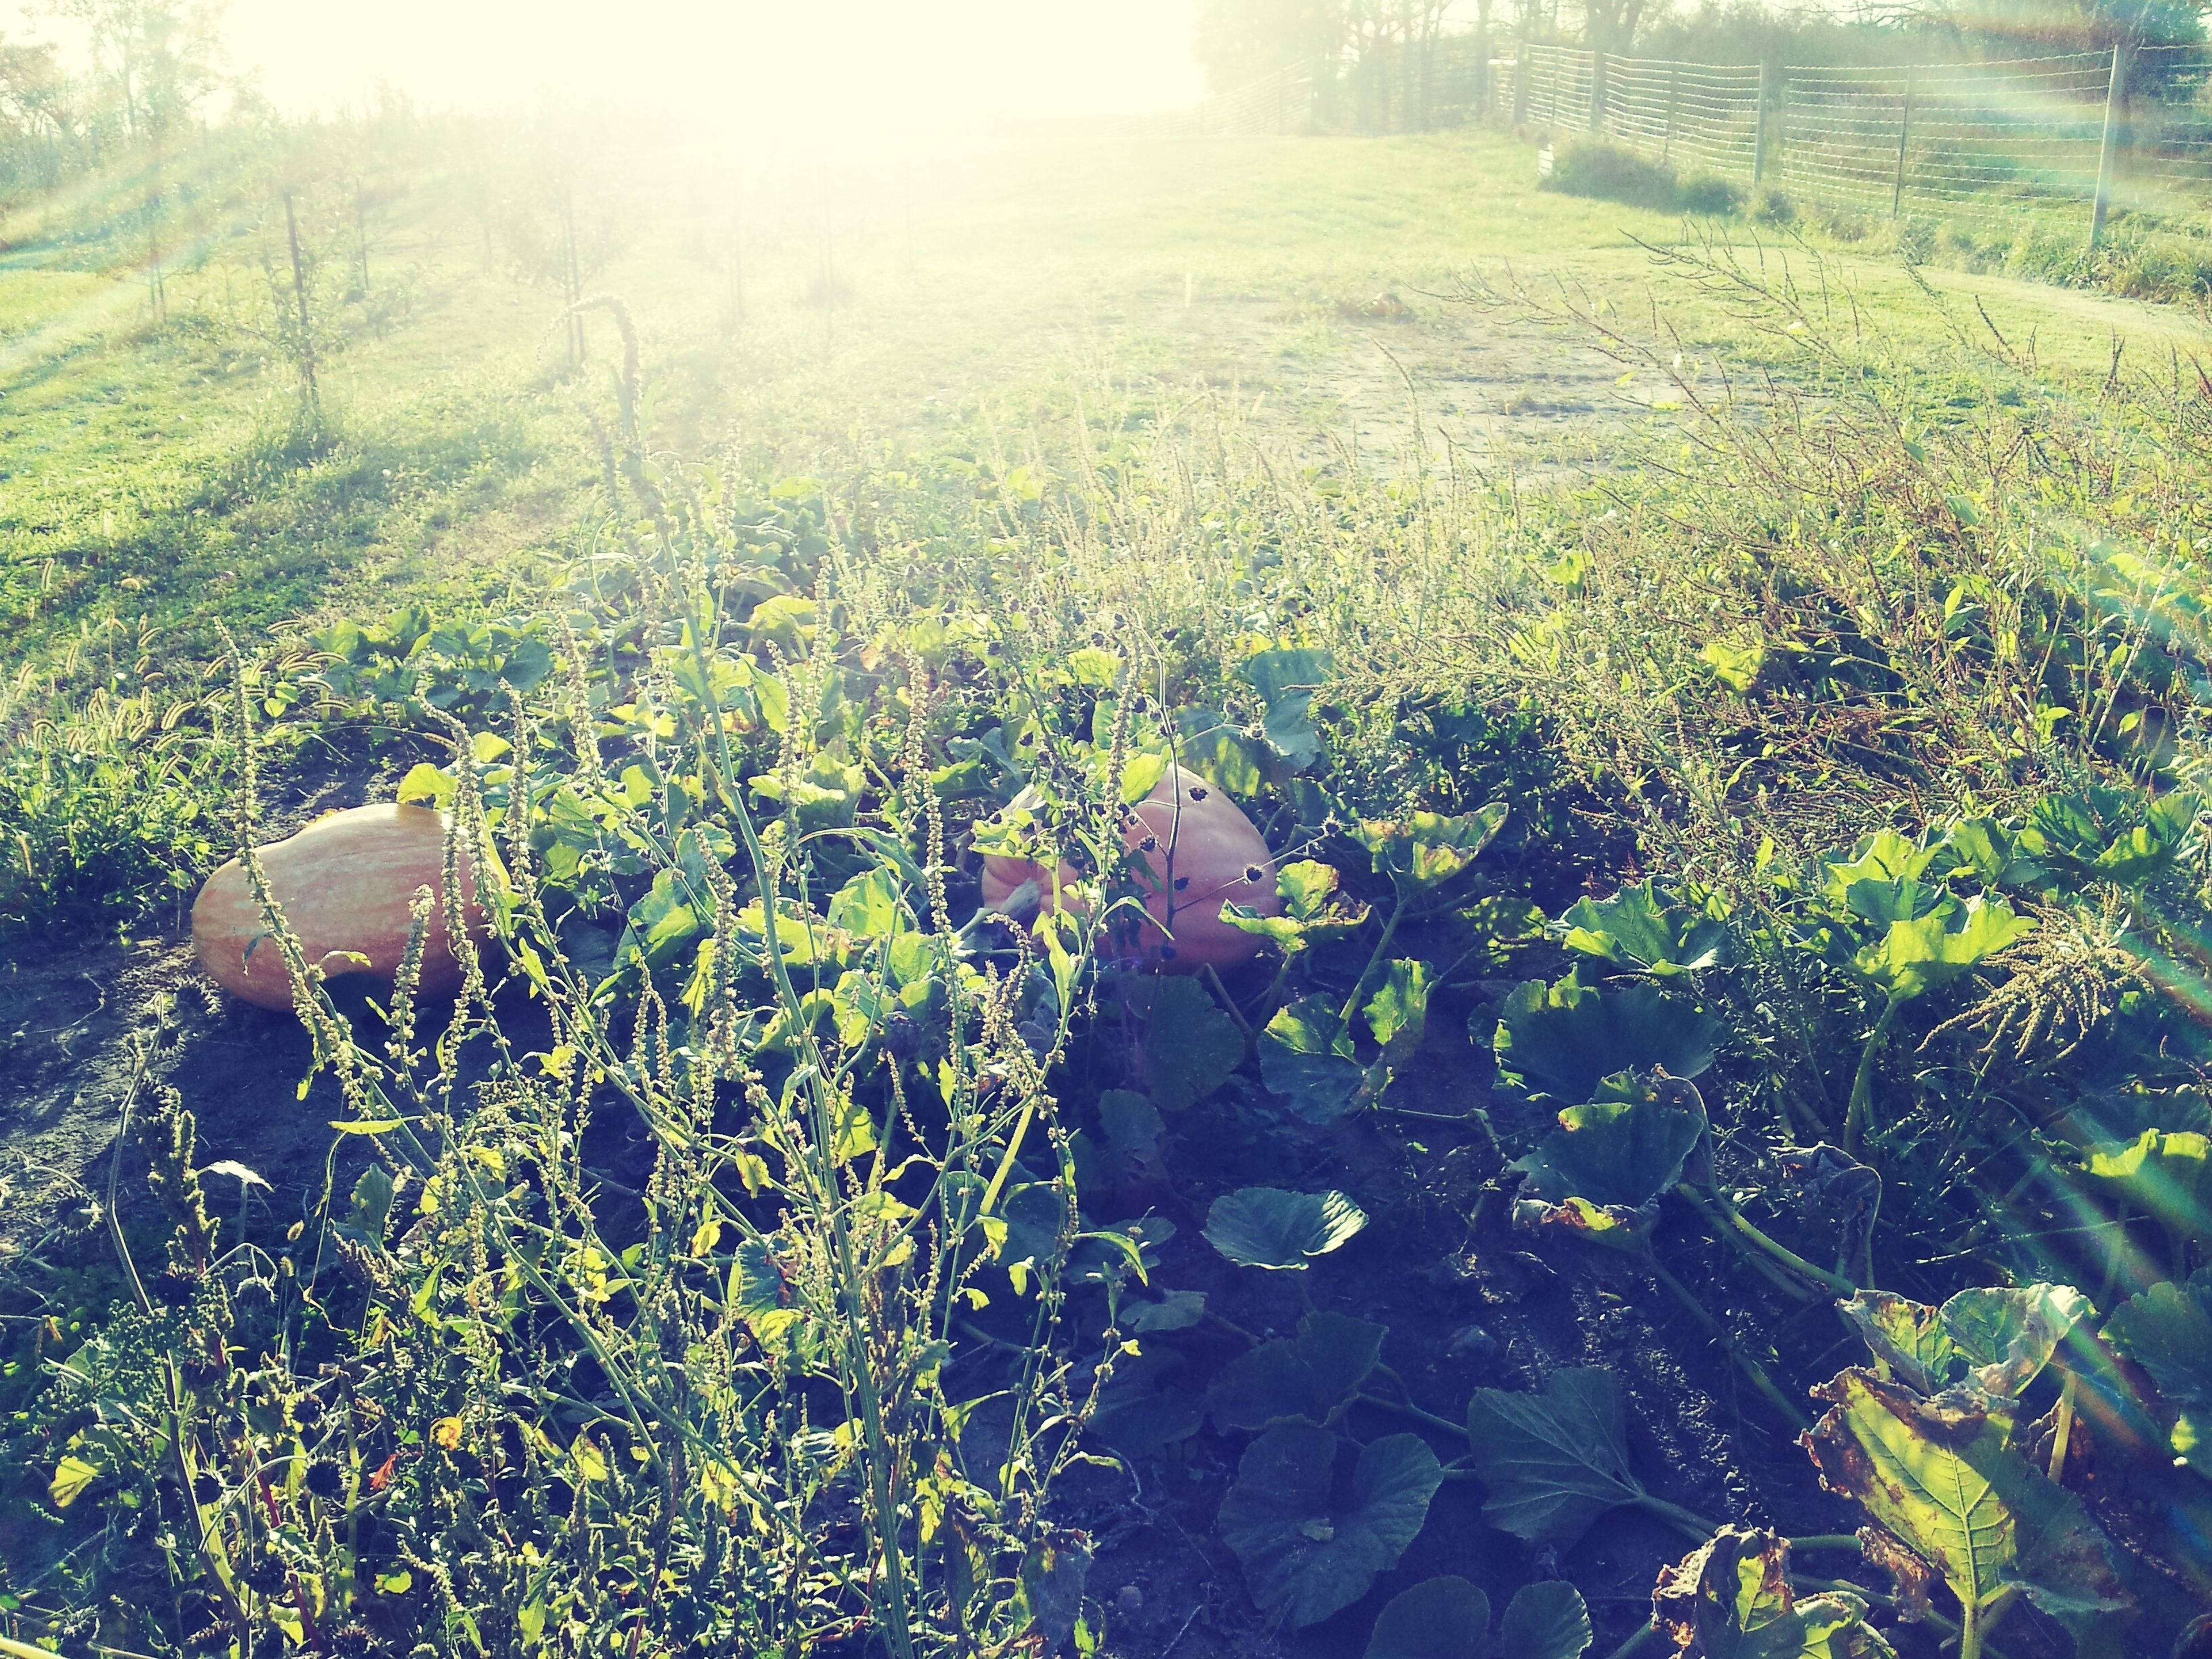 growth, sunbeam, sunlight, green color, plant, nature, tranquility, tree, beauty in nature, sun, field, lens flare, tranquil scene, grass, sunny, scenics, day, landscape, outdoors, no people